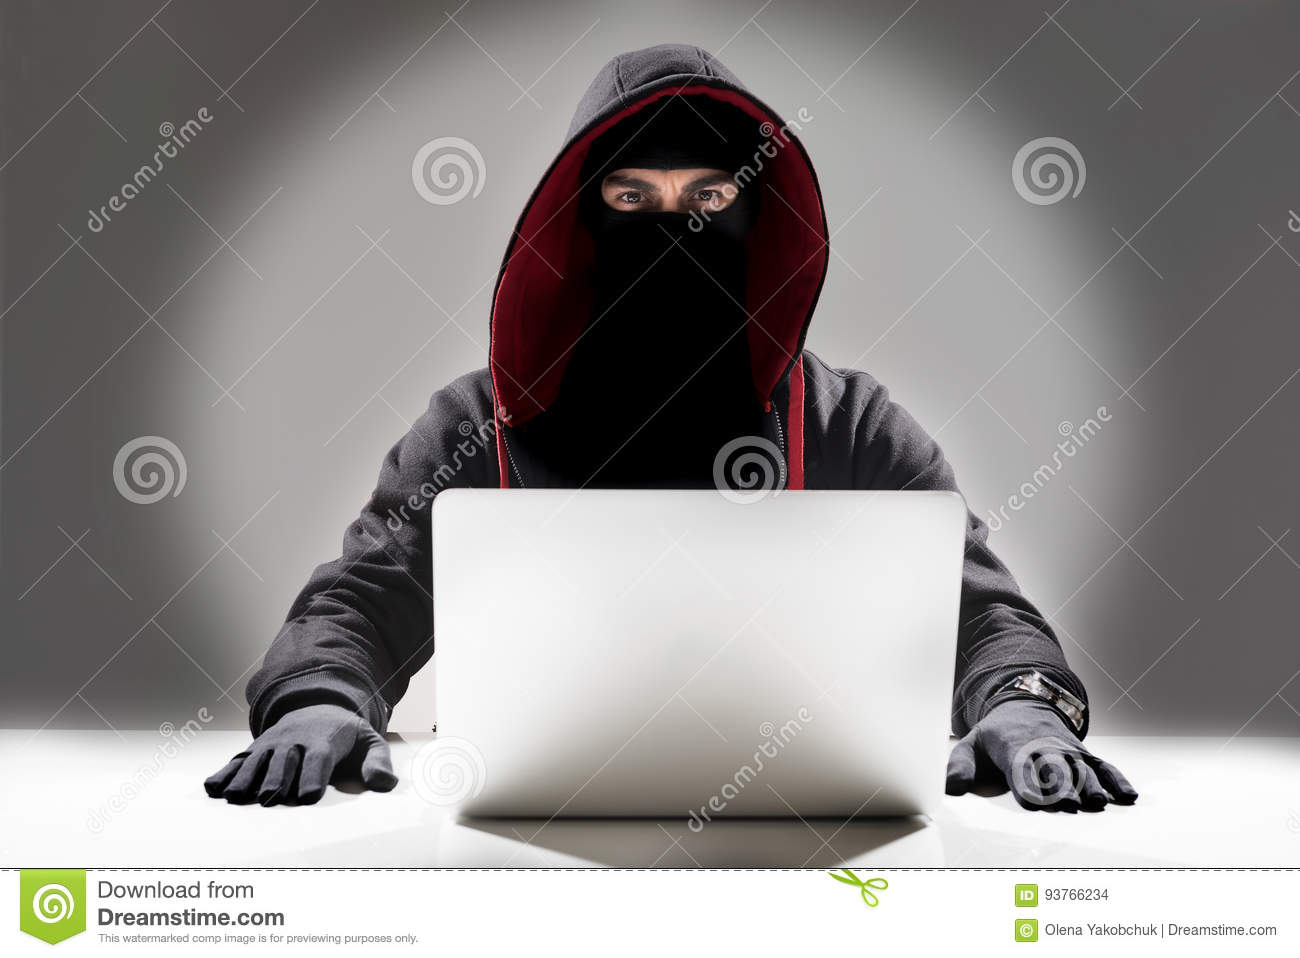 Serious hacker stealing information from laptop